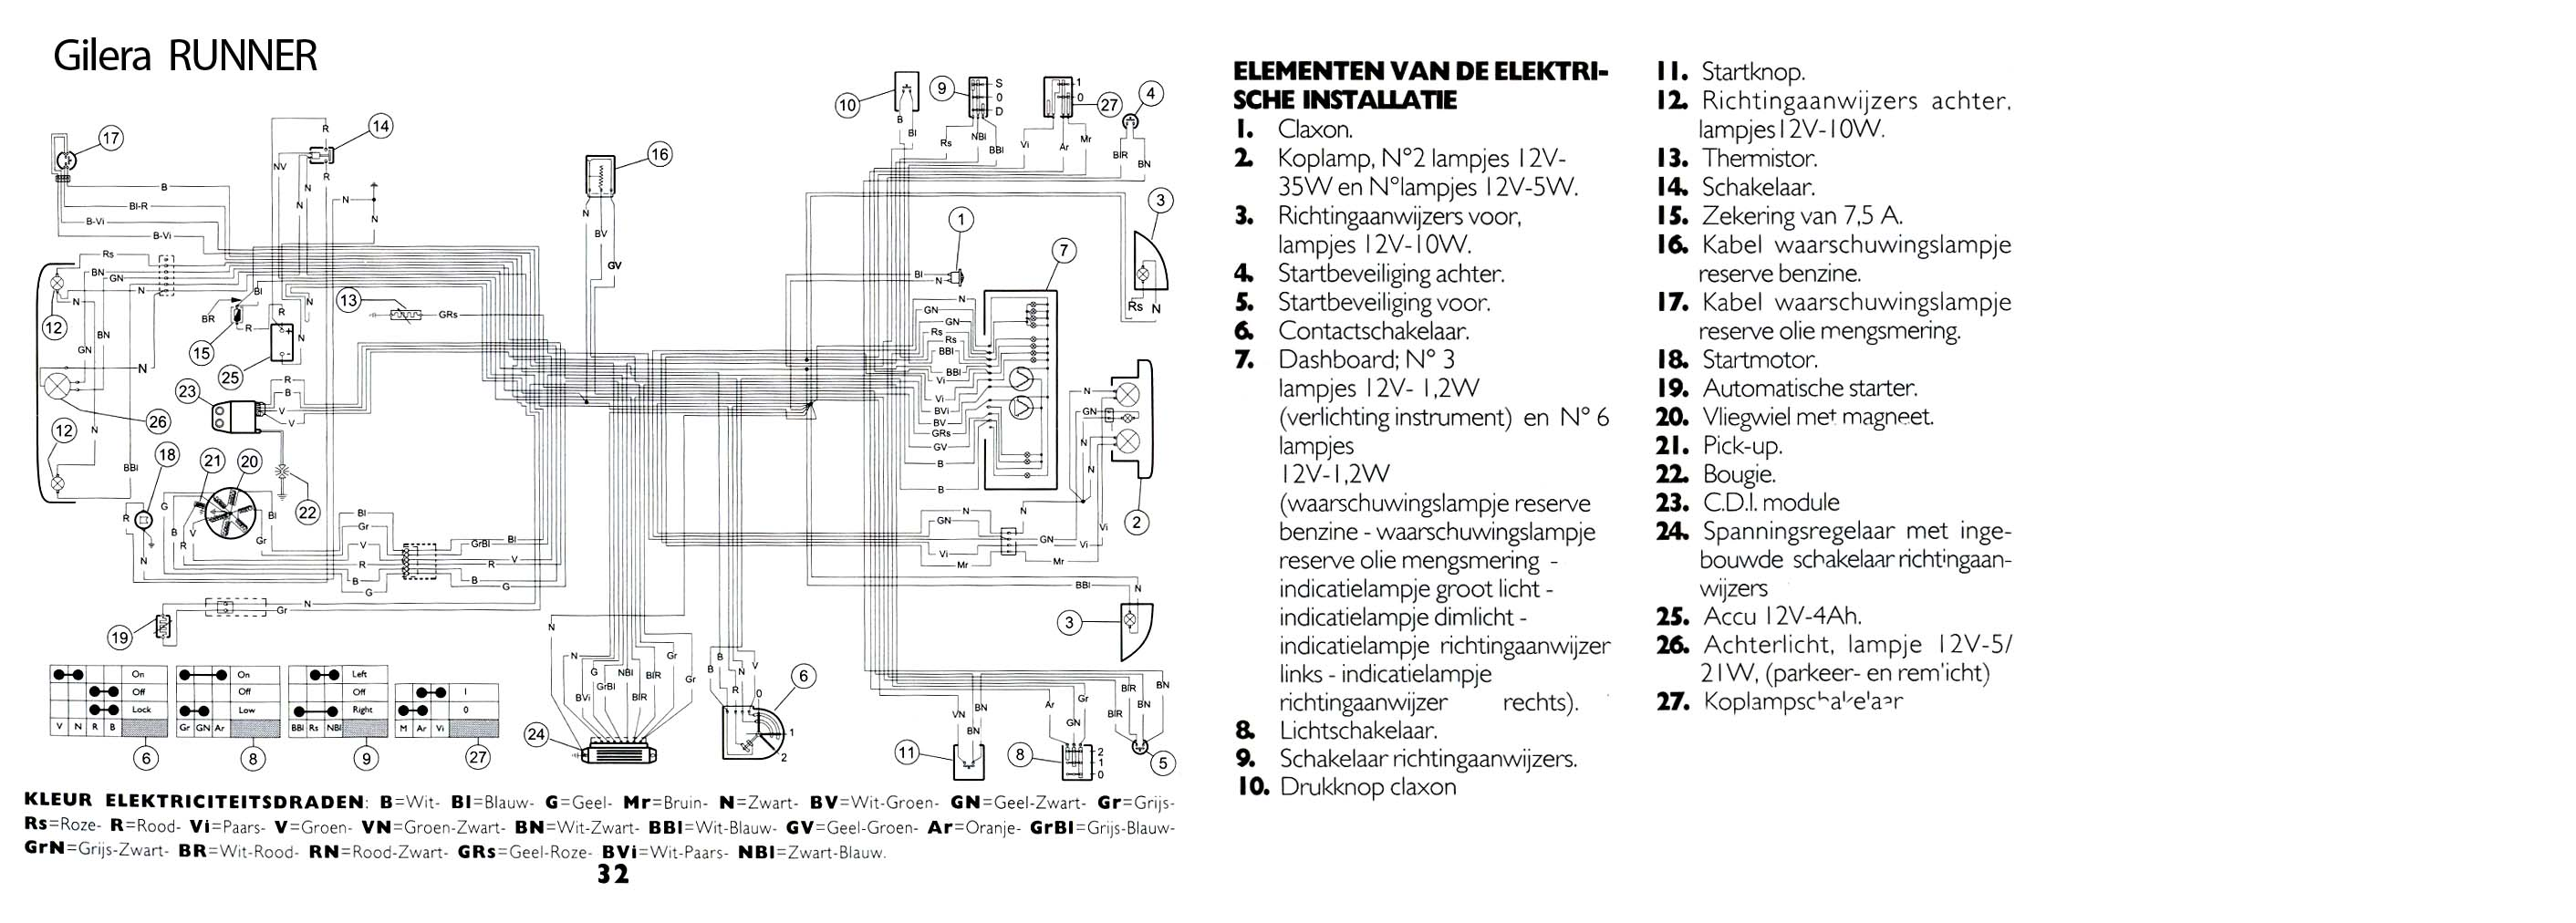 tw200 wiring diagram wiring diagram byblank moto_sheme_Gilera_Runner_50 tw200  wiring diagram wiring diagram byblank at cita.asia